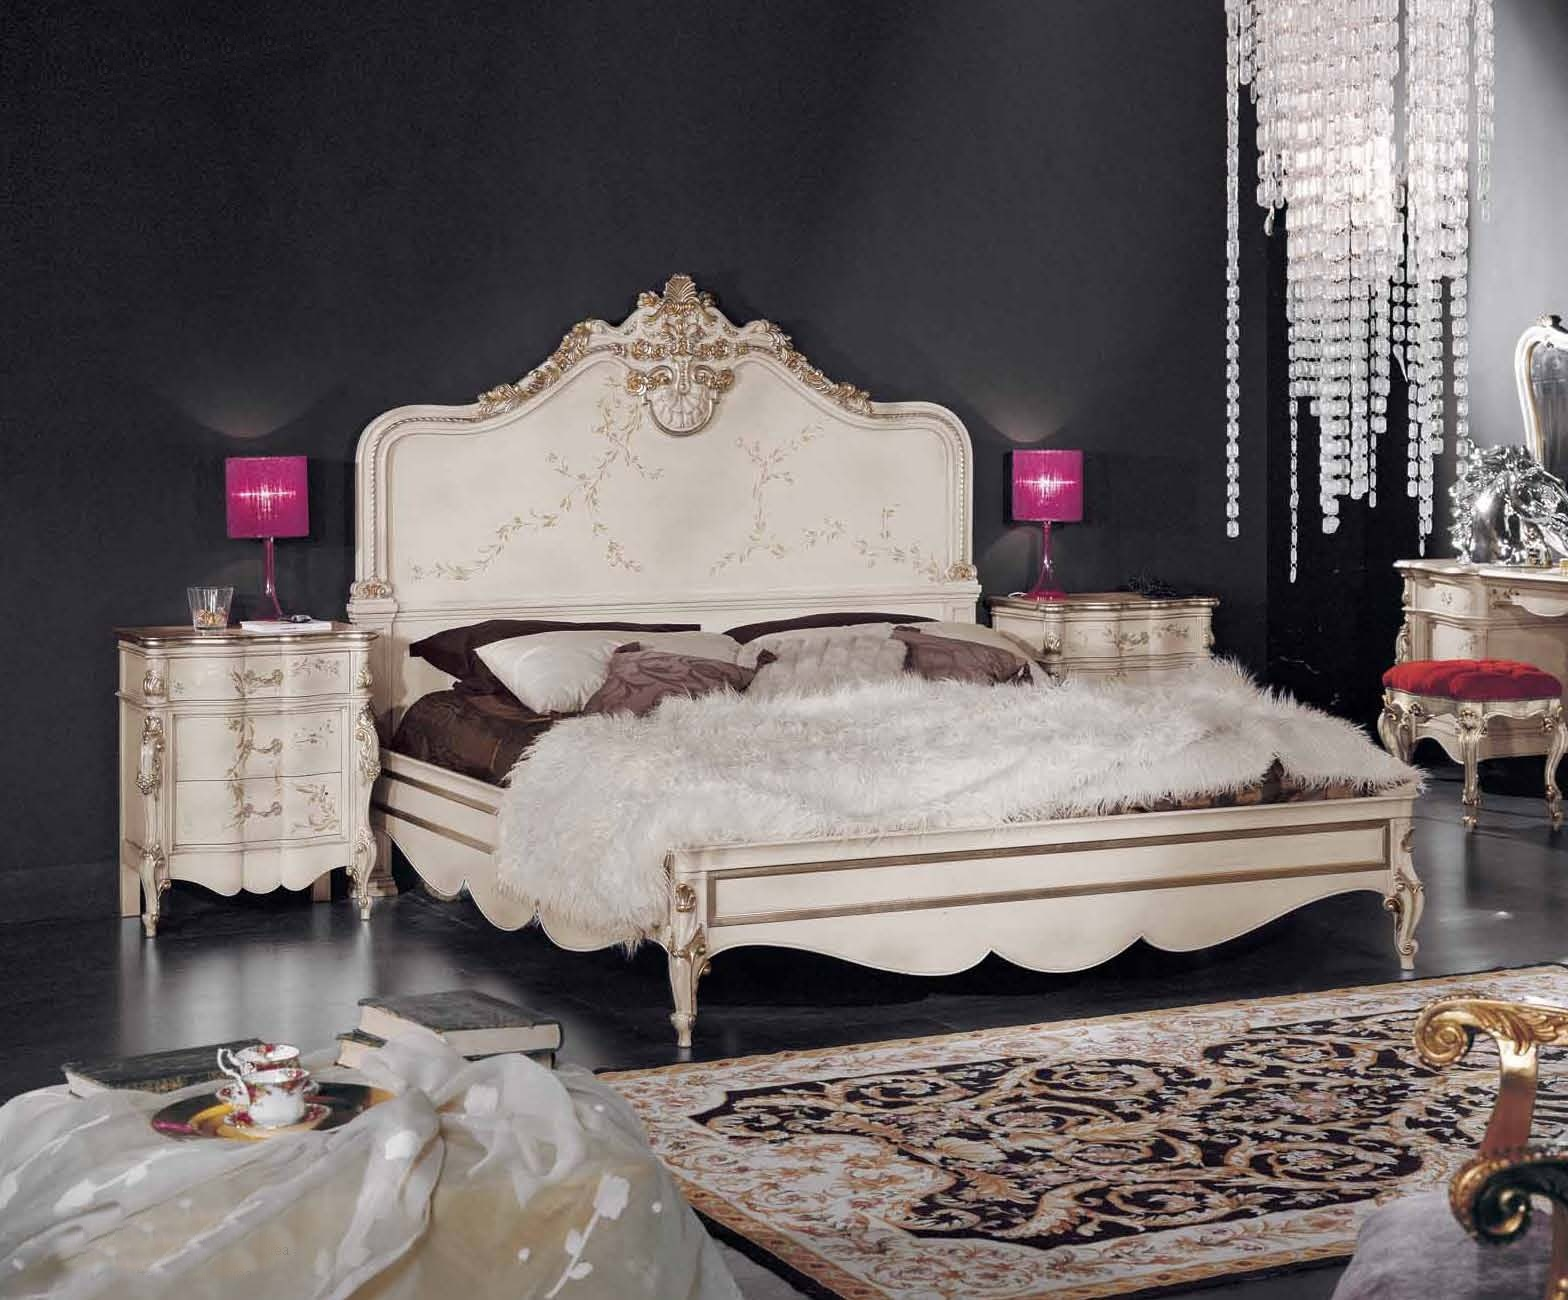 Bedroom suite with carved decoration in